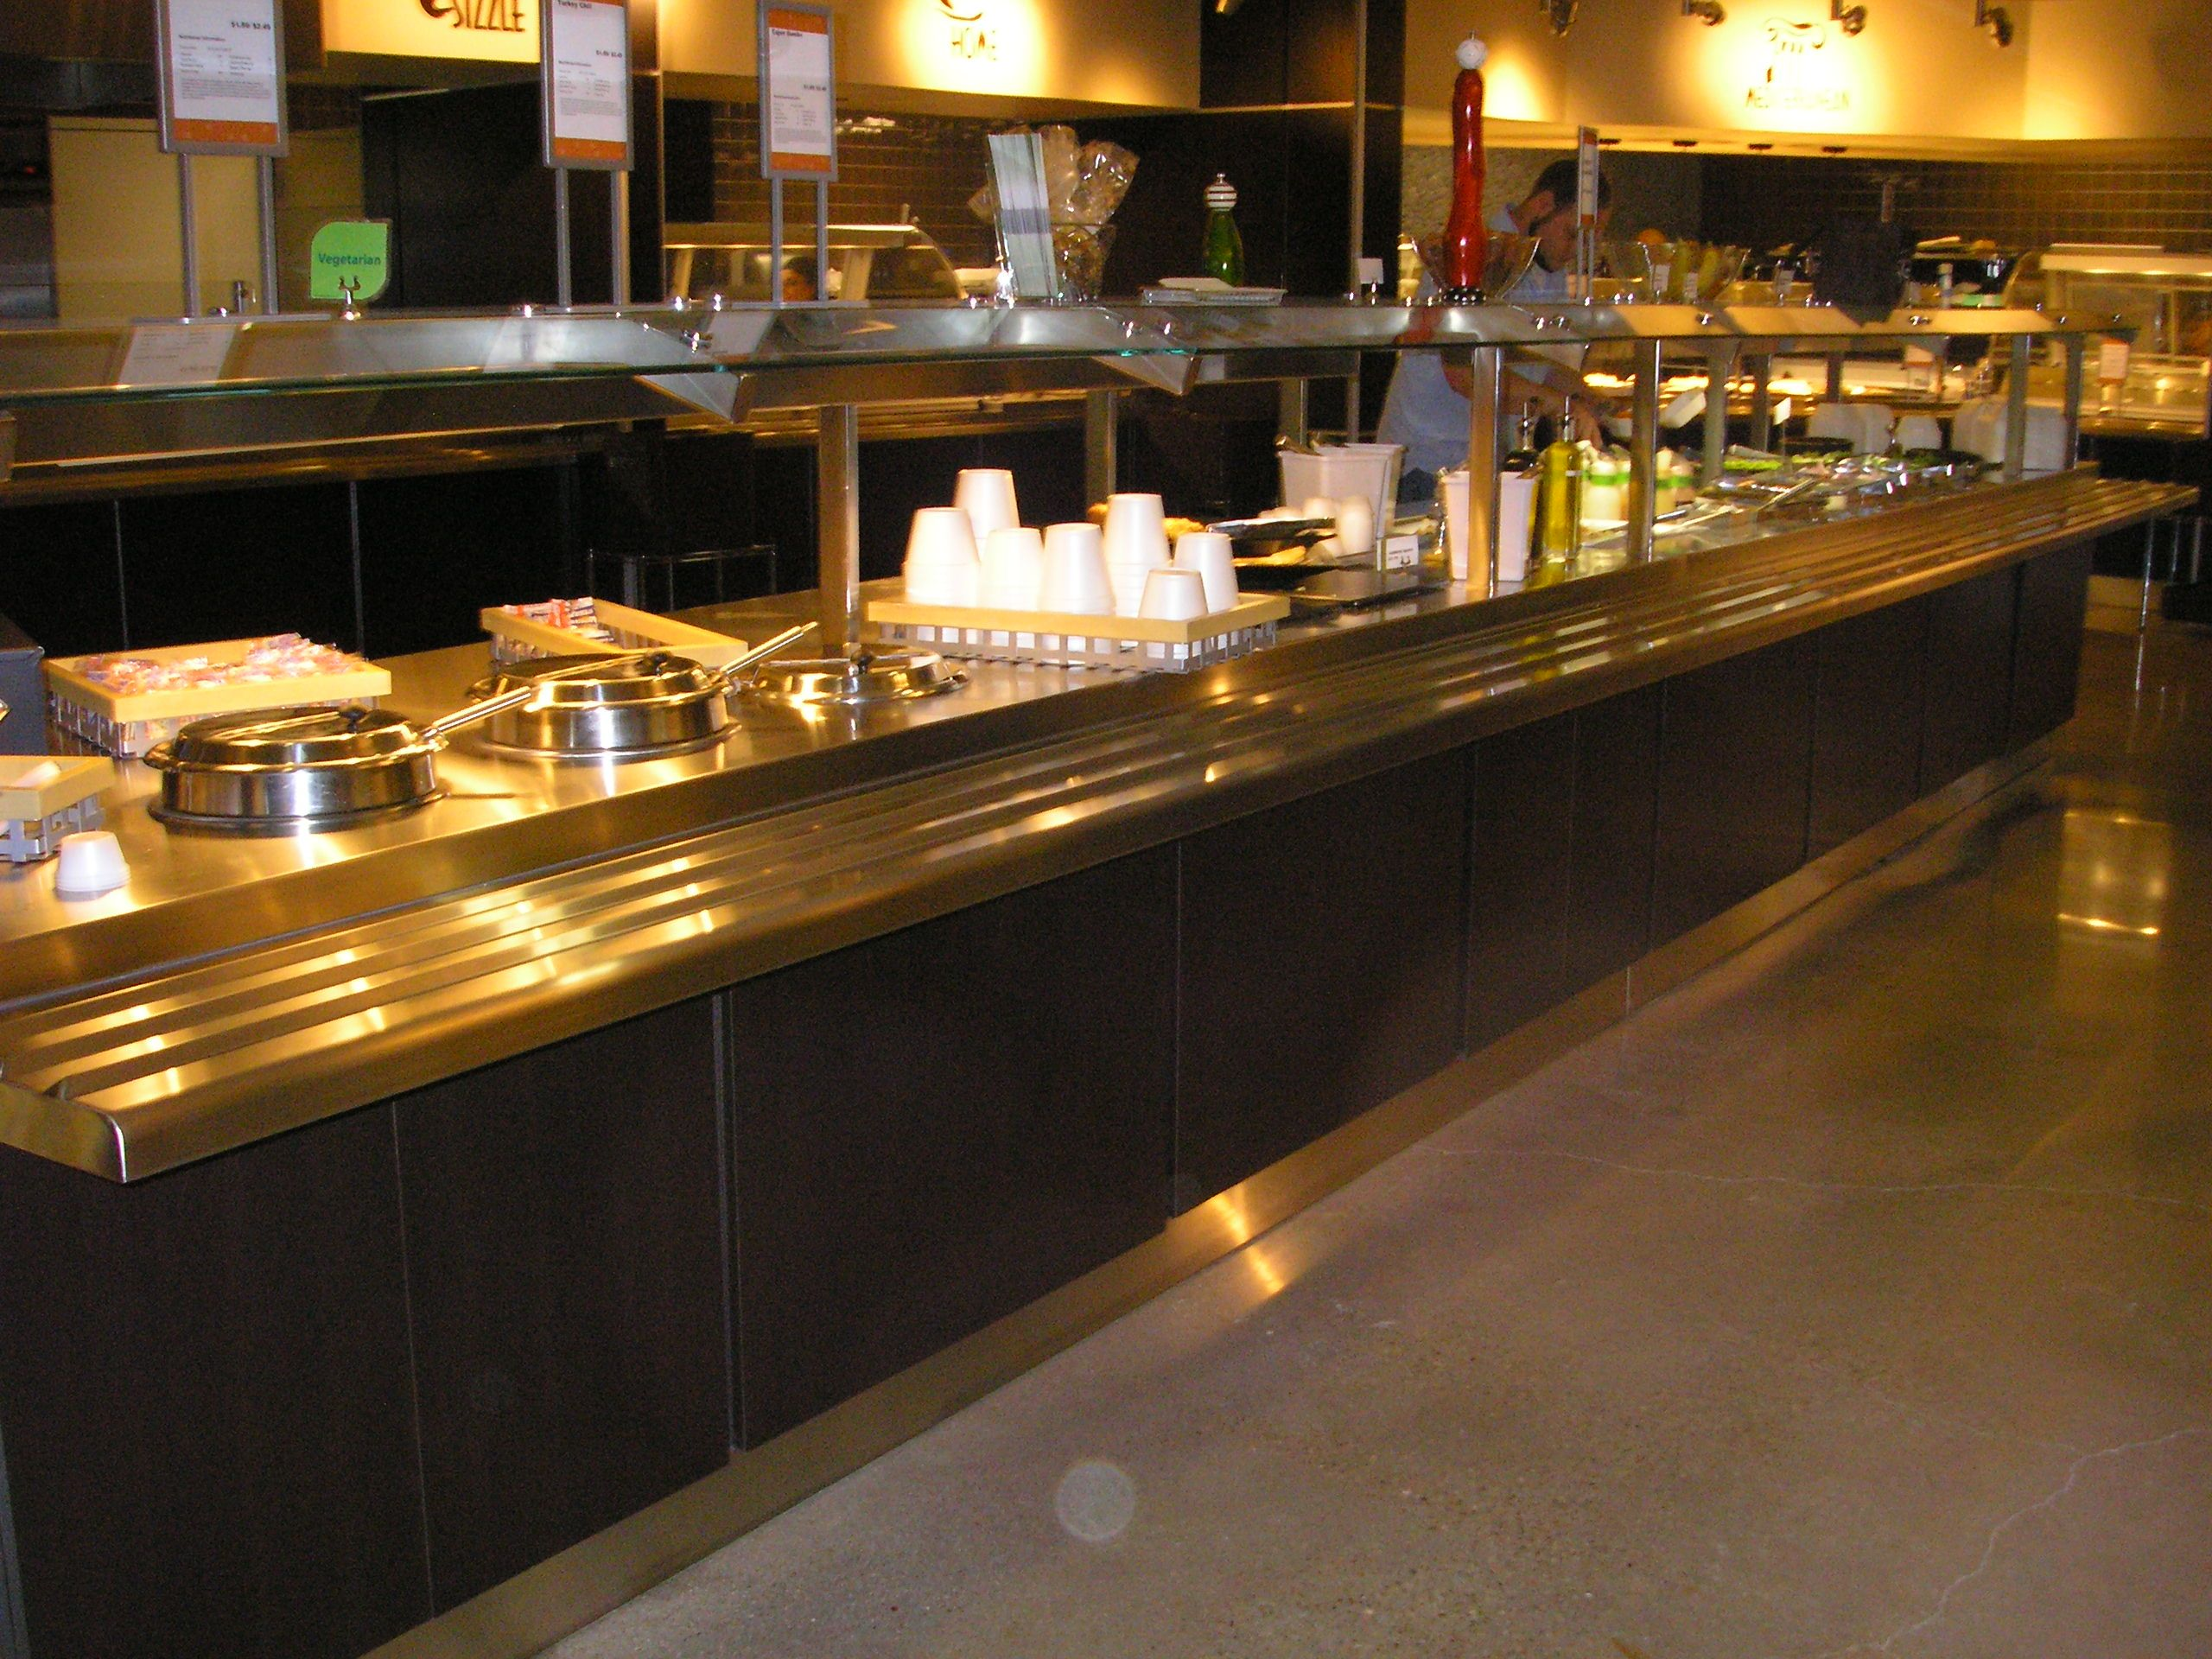 kitchen design commercial kitchen design Furniture Glamorous Small Restaurant Kitchen Design With Classy Long Rectangular Serving Place For Food